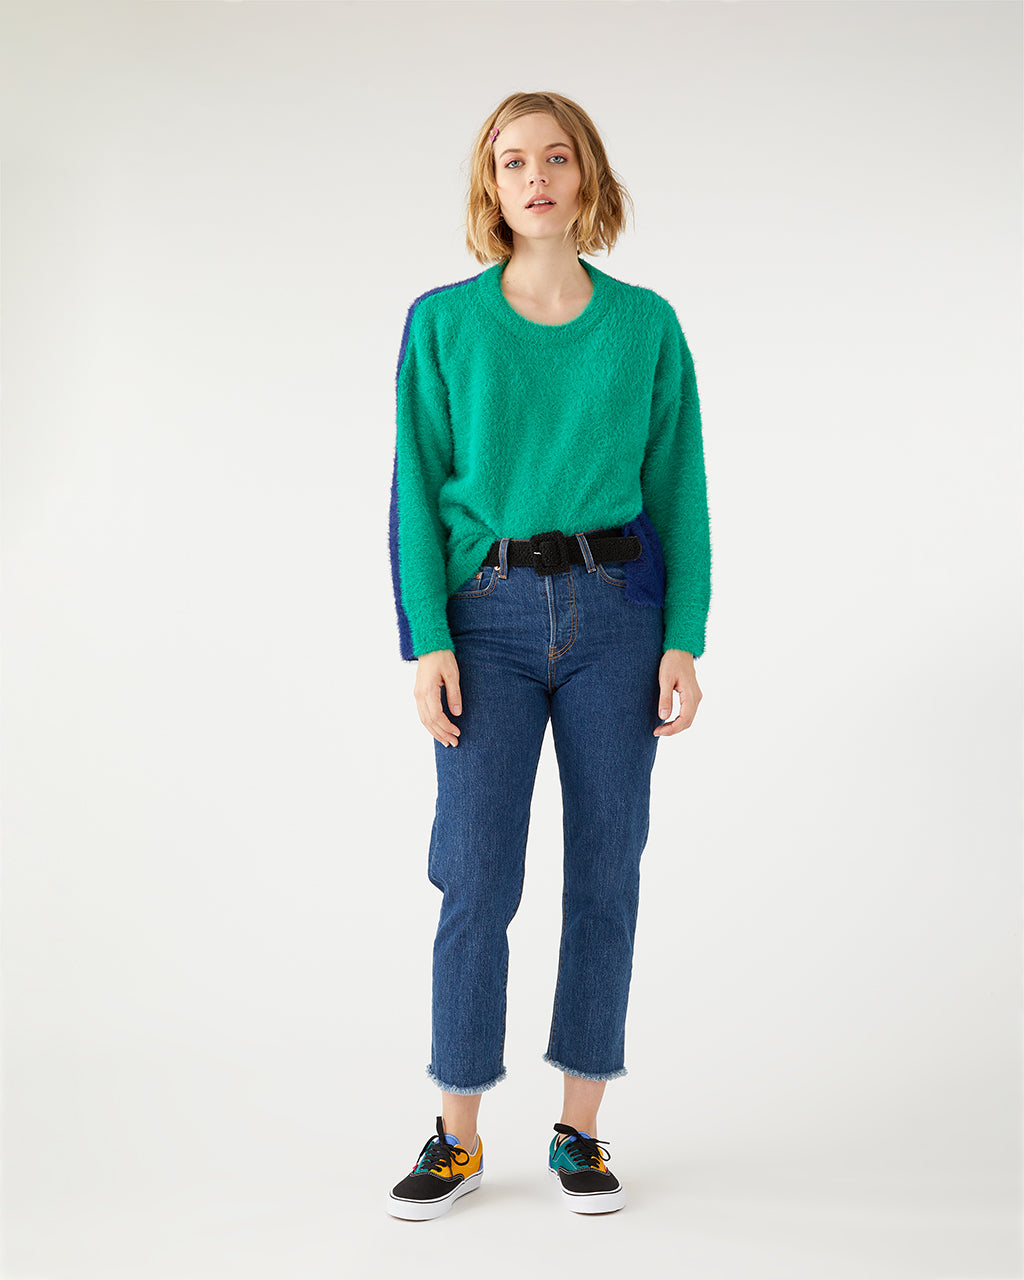 Colorblock sweater in green and navy.